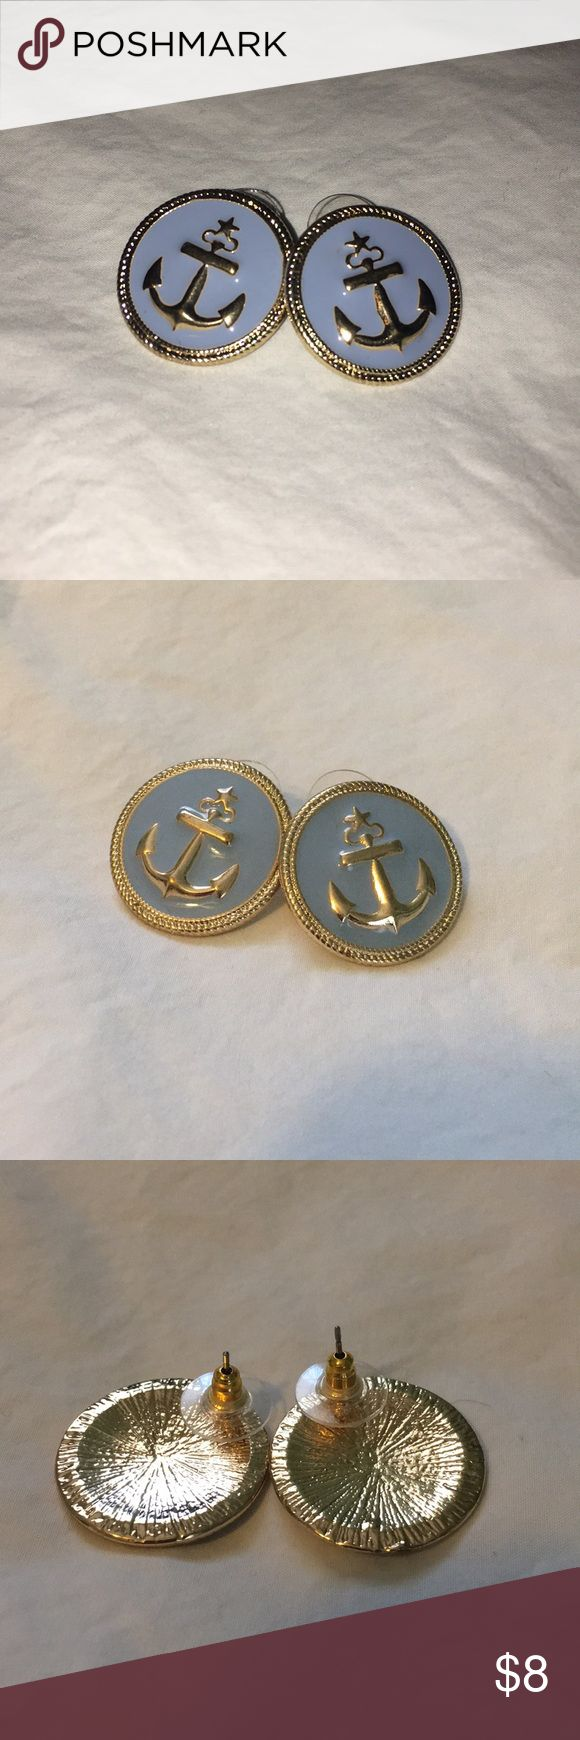 NWOT Anchor earrings Anchor earrings from Charming Charlie. Periwinkle blue, very cute! NWOT, never worn. Excellent condition. Make an offer or bundle!! Charming Charlie Jewelry Earrings